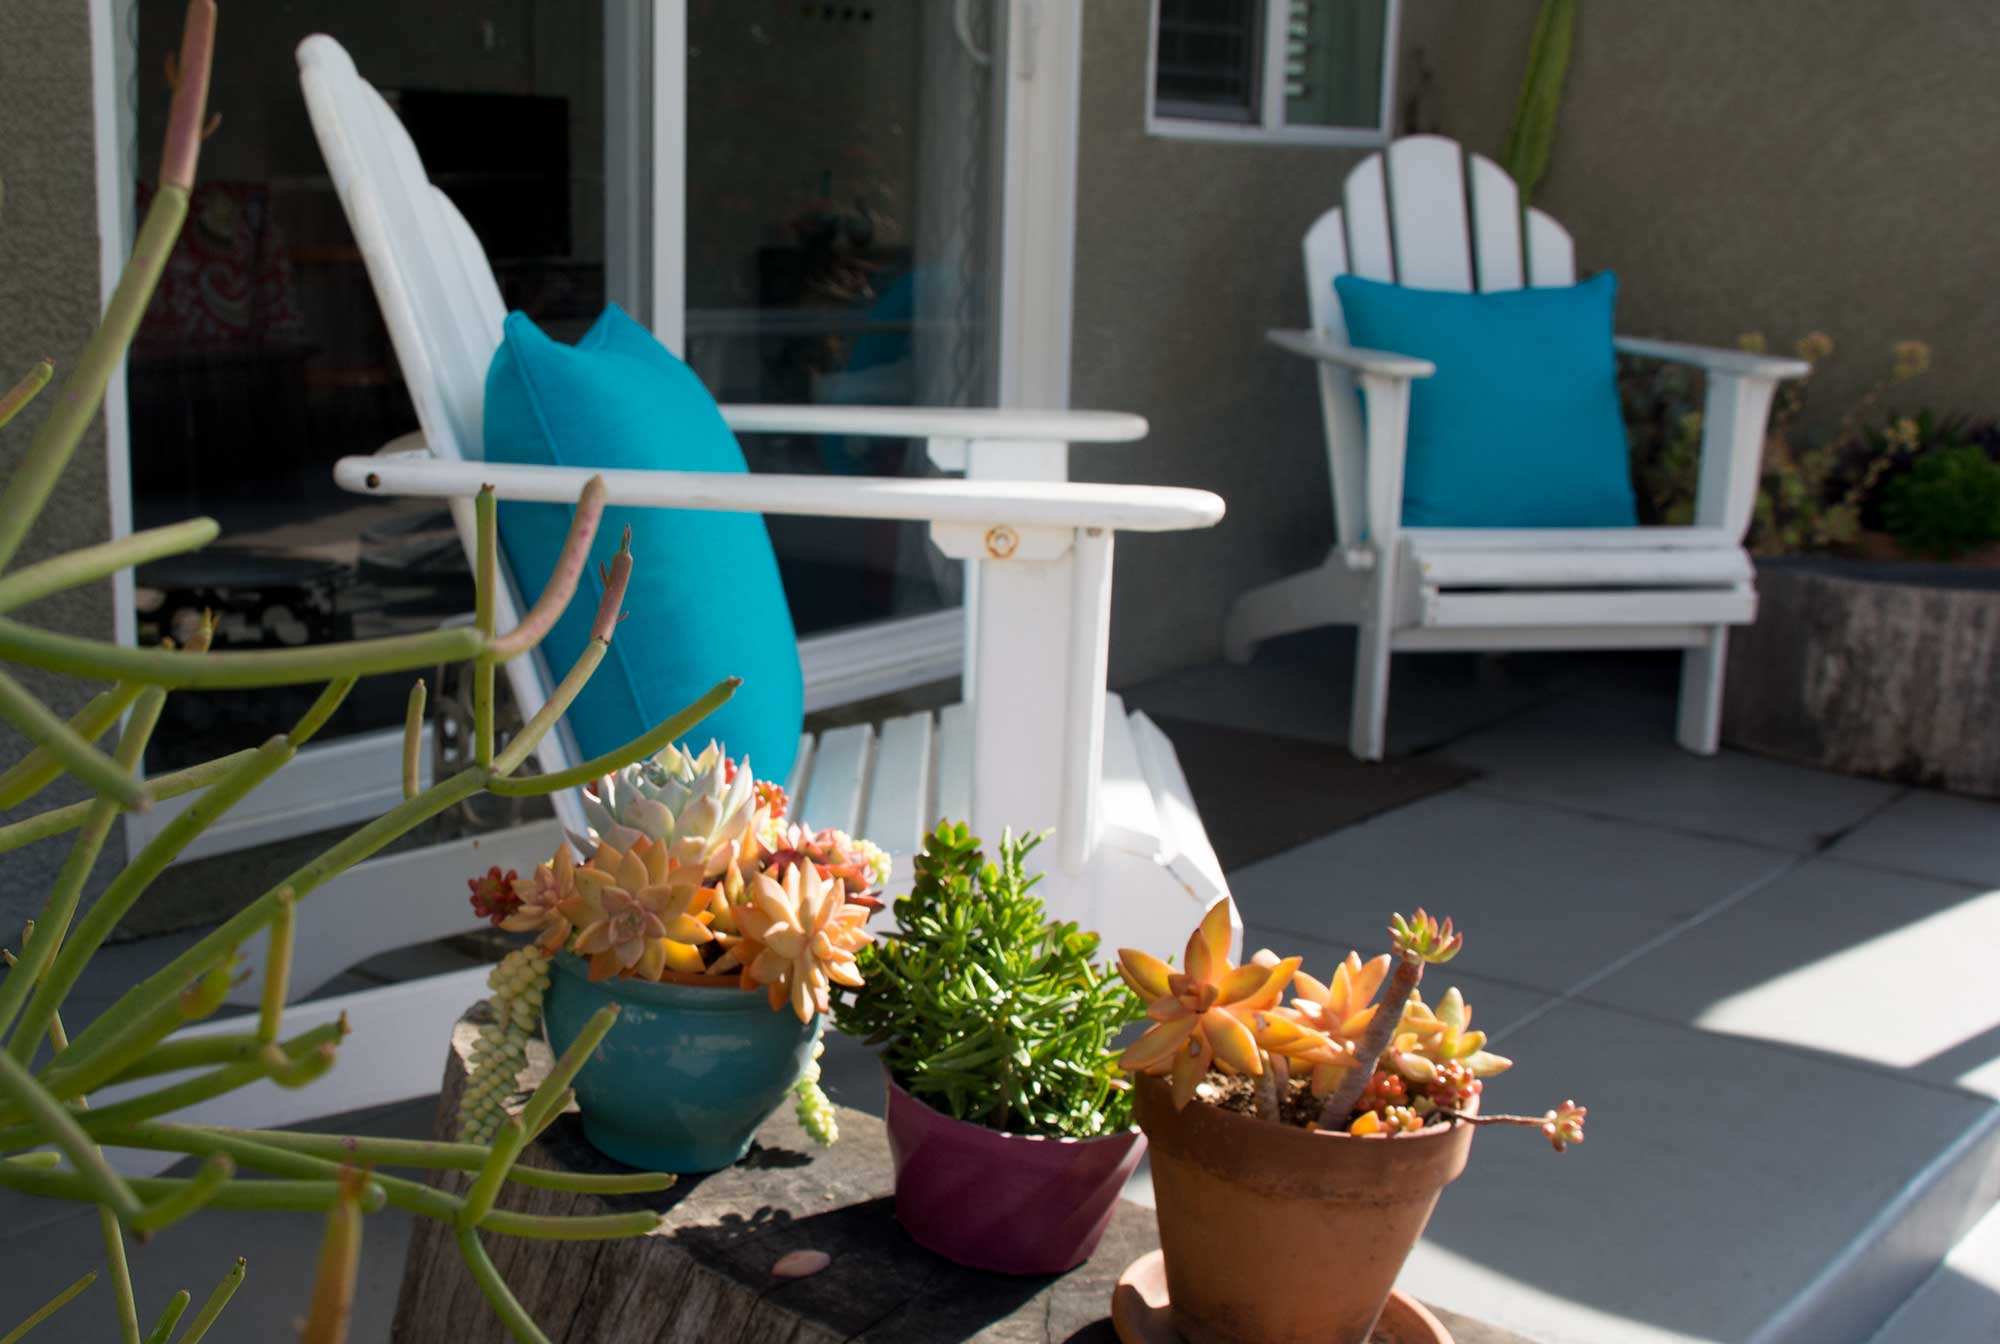 A big backyard and cozy patio provides a comfortable space for outside vision improvement activities, for kids and grown ups alike.